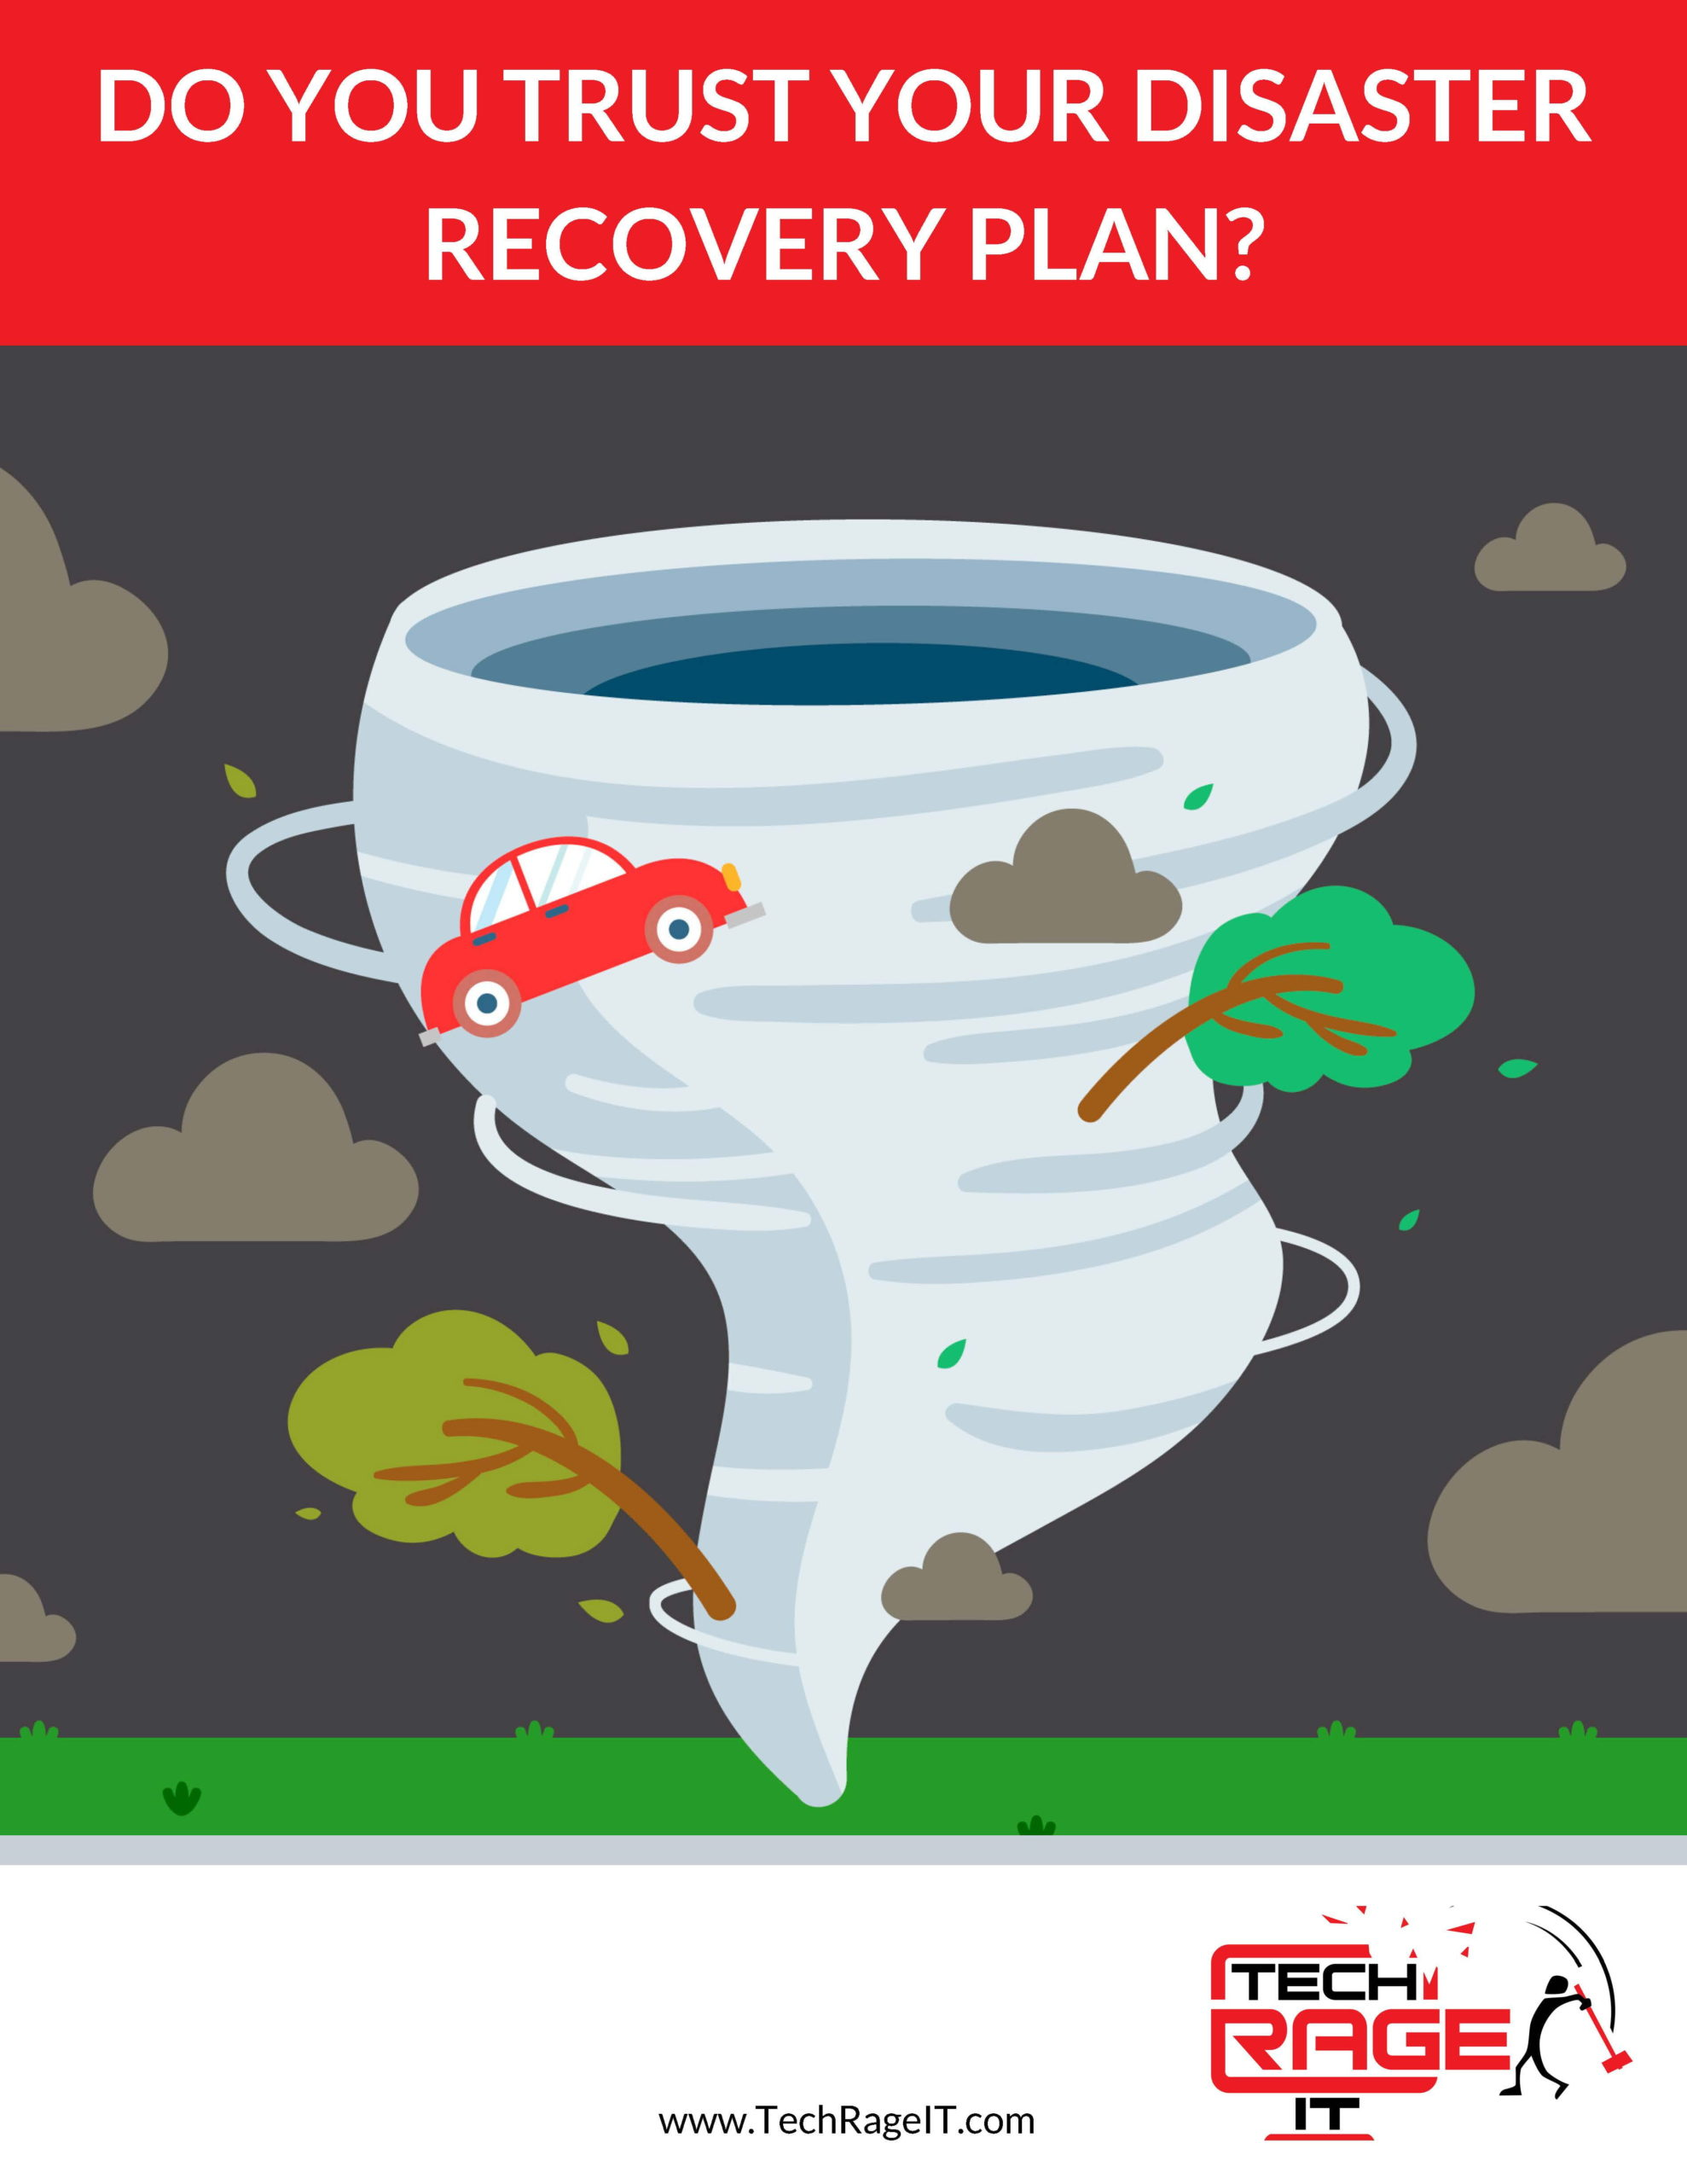 TechRageIT_Do-You-Trust-Your-Disaster-Recovery-Plan_Page_1-min-scaled